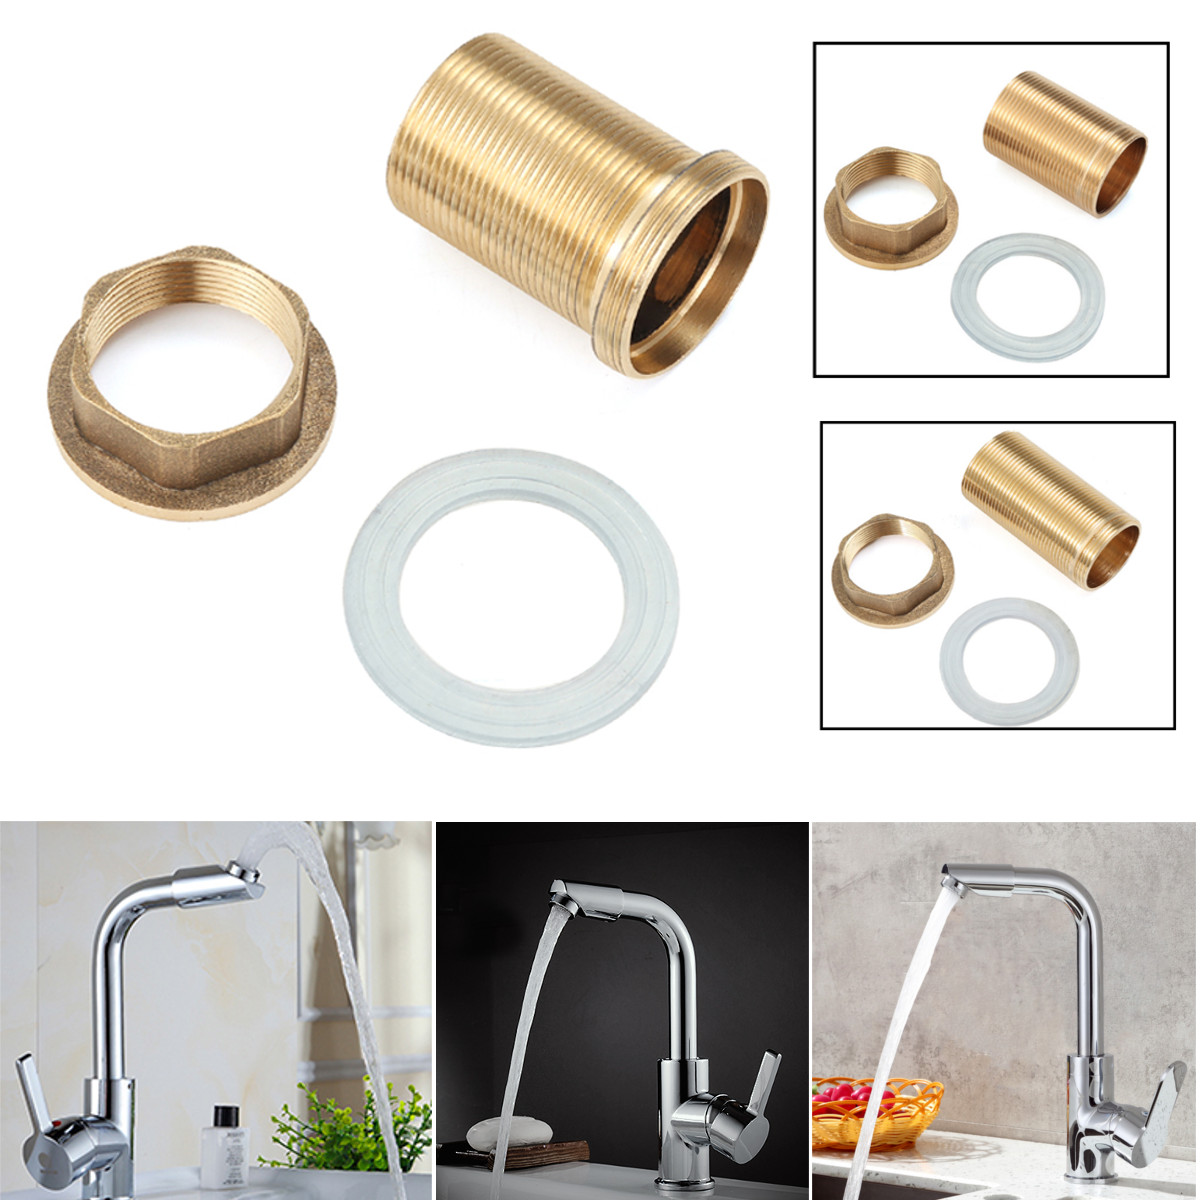 Home Kitchen Basin Mixer Tap Repair Fitting Kit Faucet Threaded Brass Tube Nut Washer Parts Kitchen Faucet Accessories Copper